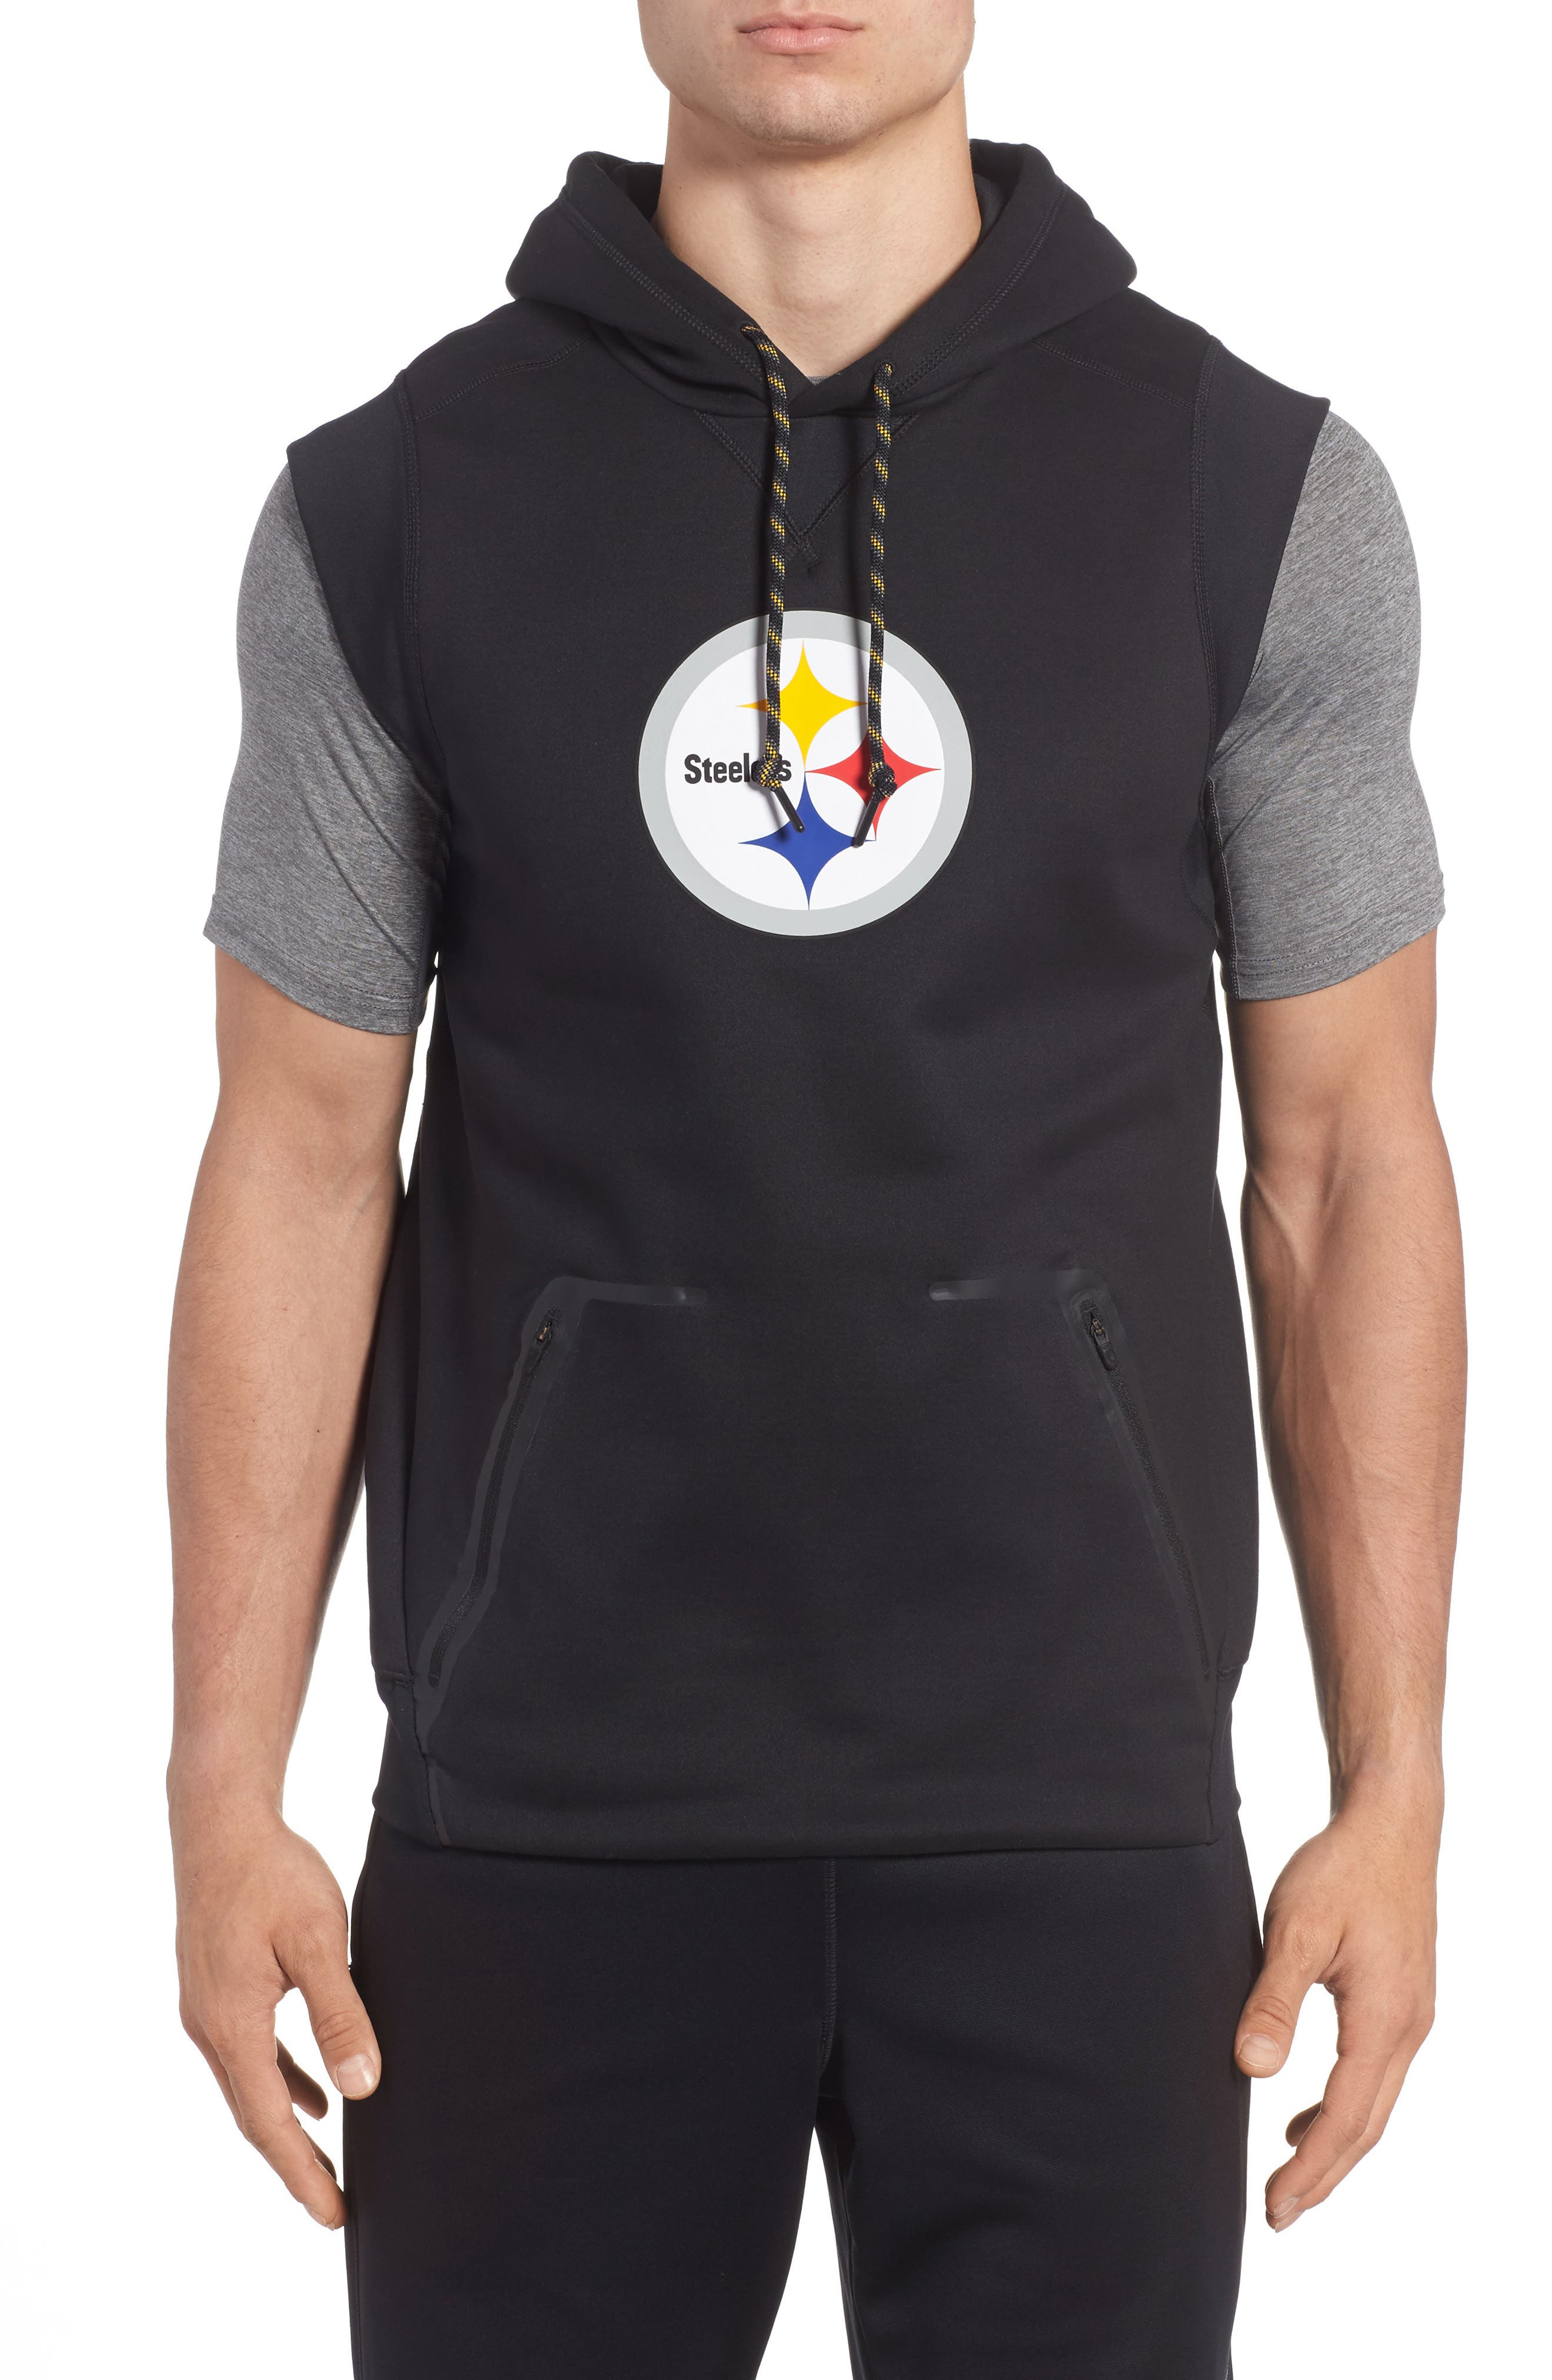 Therma-FIT NFL Graphic Sleeveless Hoodie,                             Main thumbnail 1, color,                             011